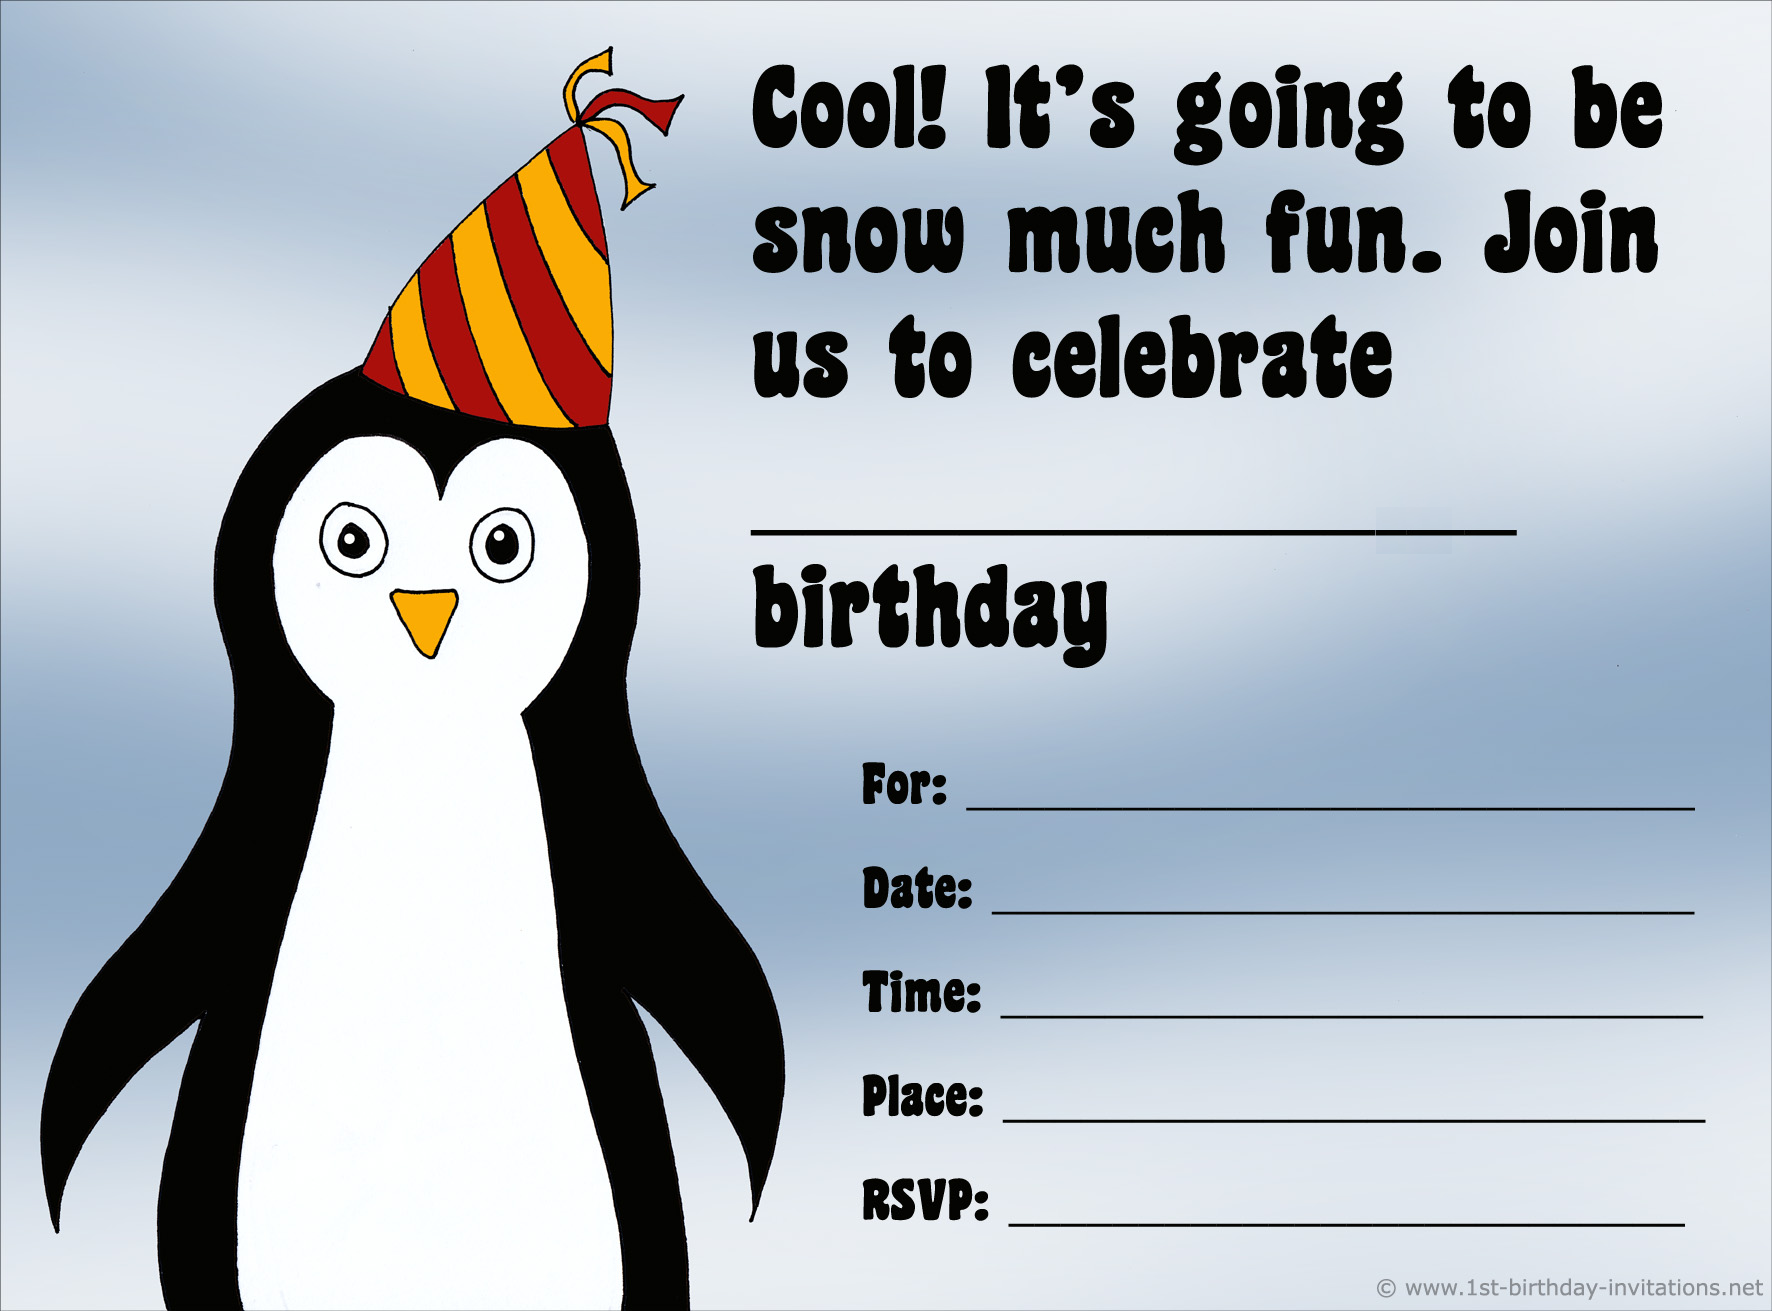 Cute Penguin birthday invitation free and printable.